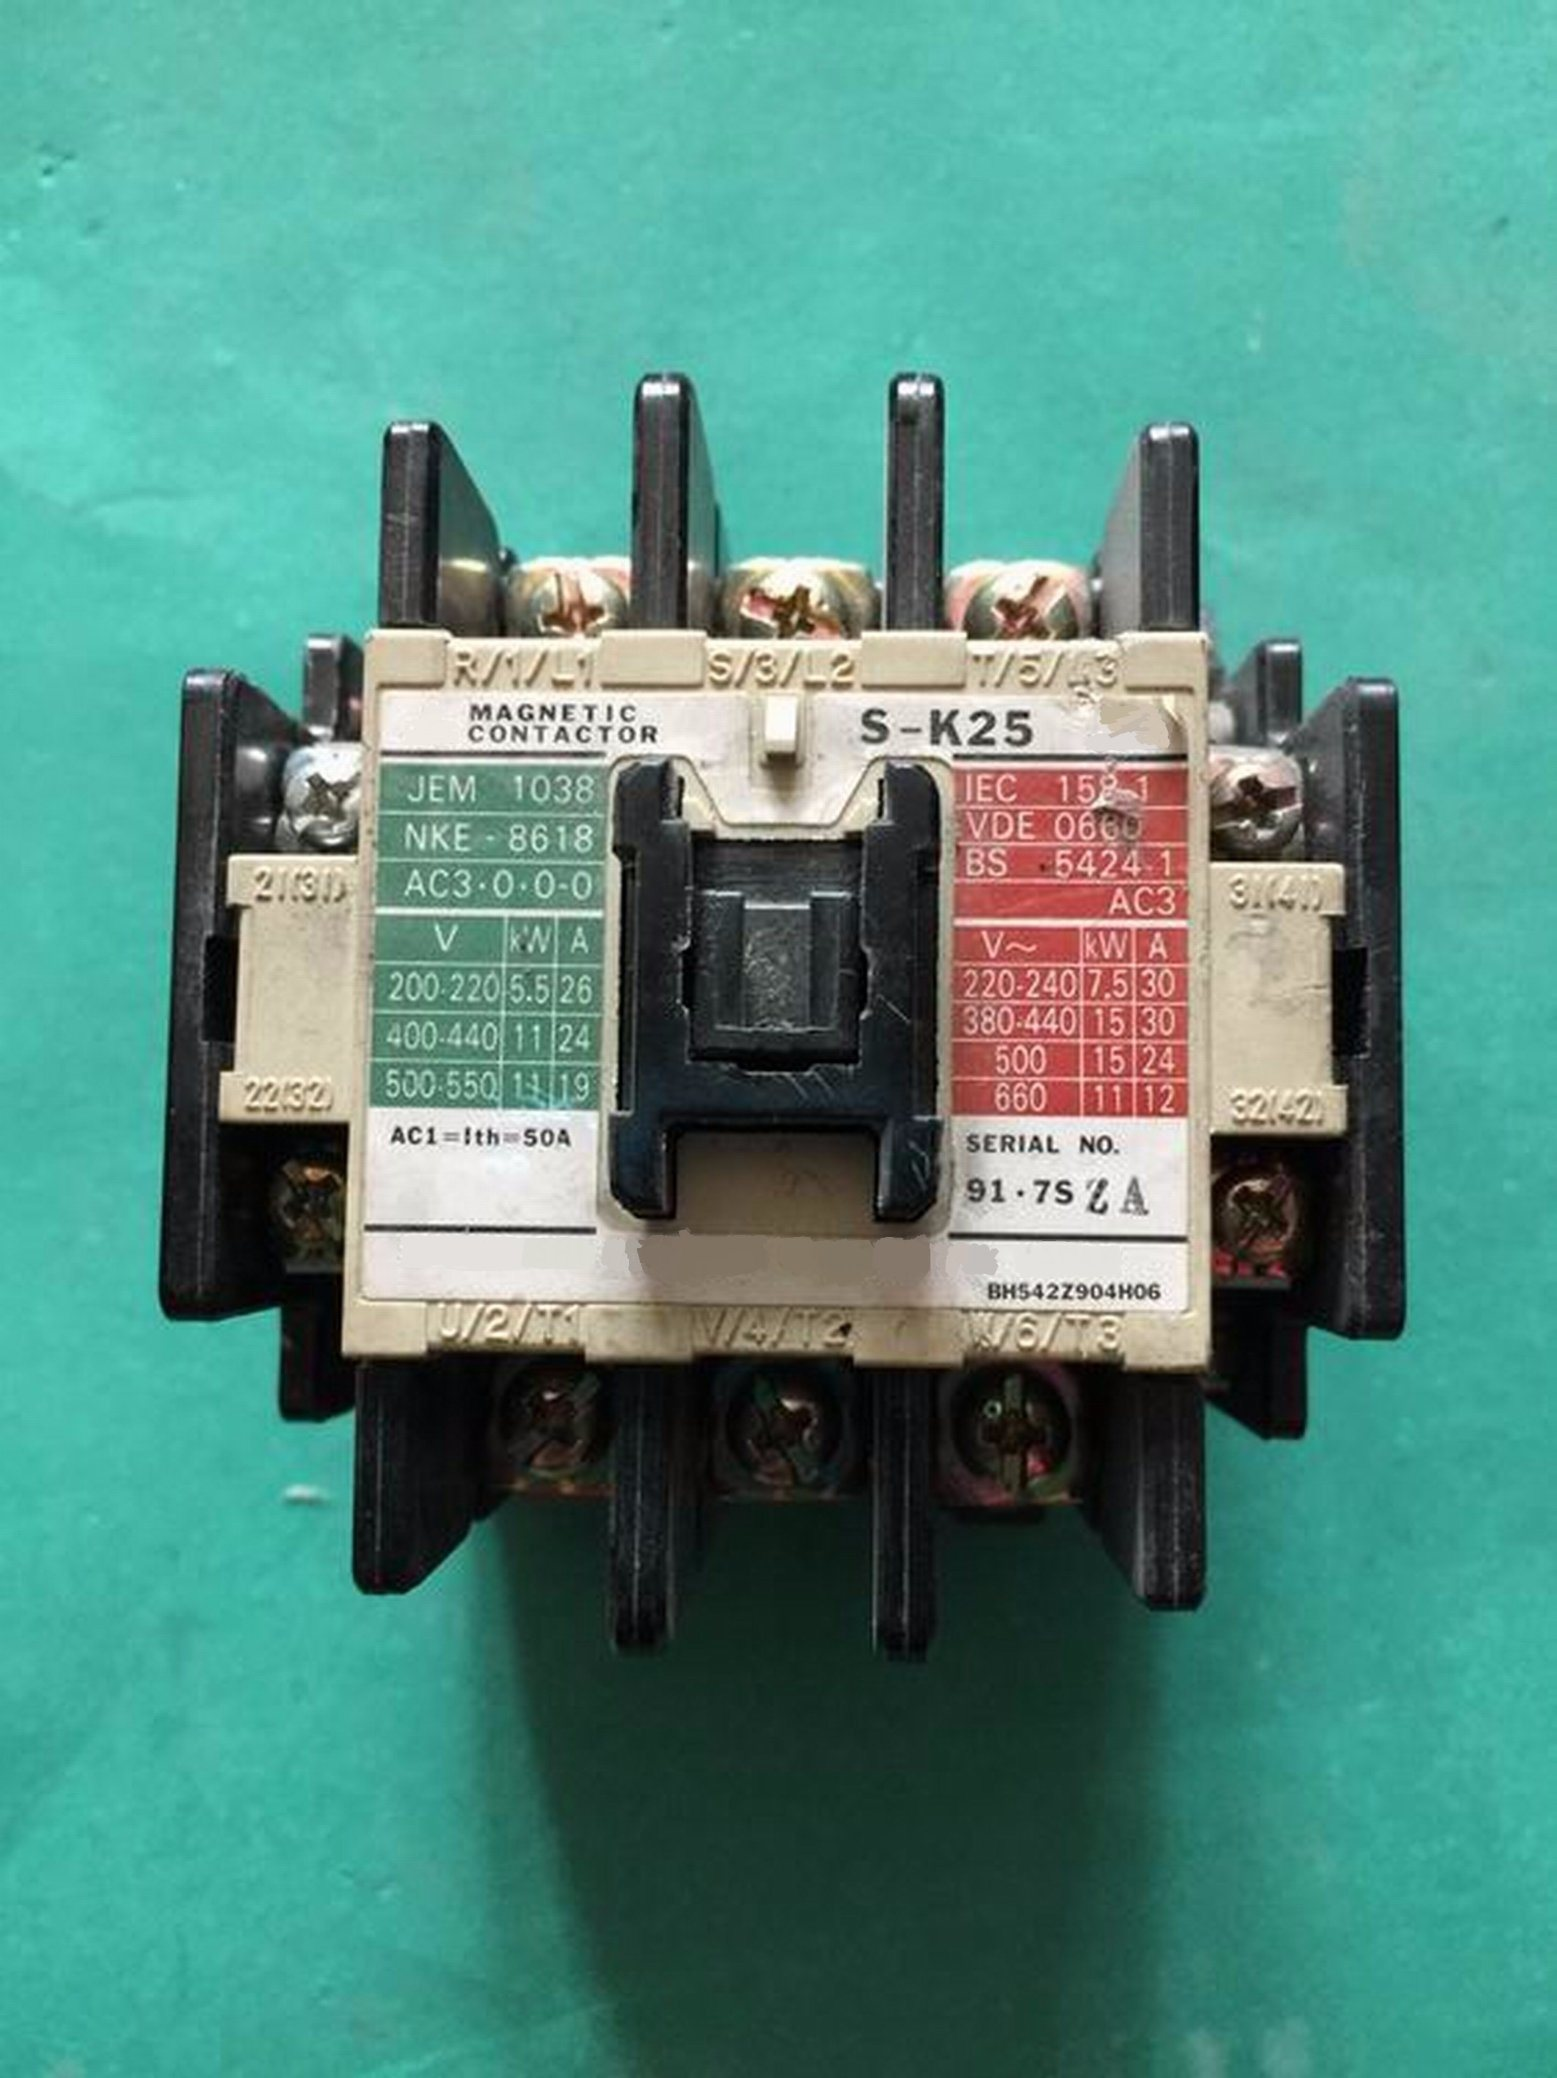 China Professional Factory For Cjx5 Magnetic Contactor 240 3 Phase Schneider Wiring Telemecanique S K25 Ac K Electrical